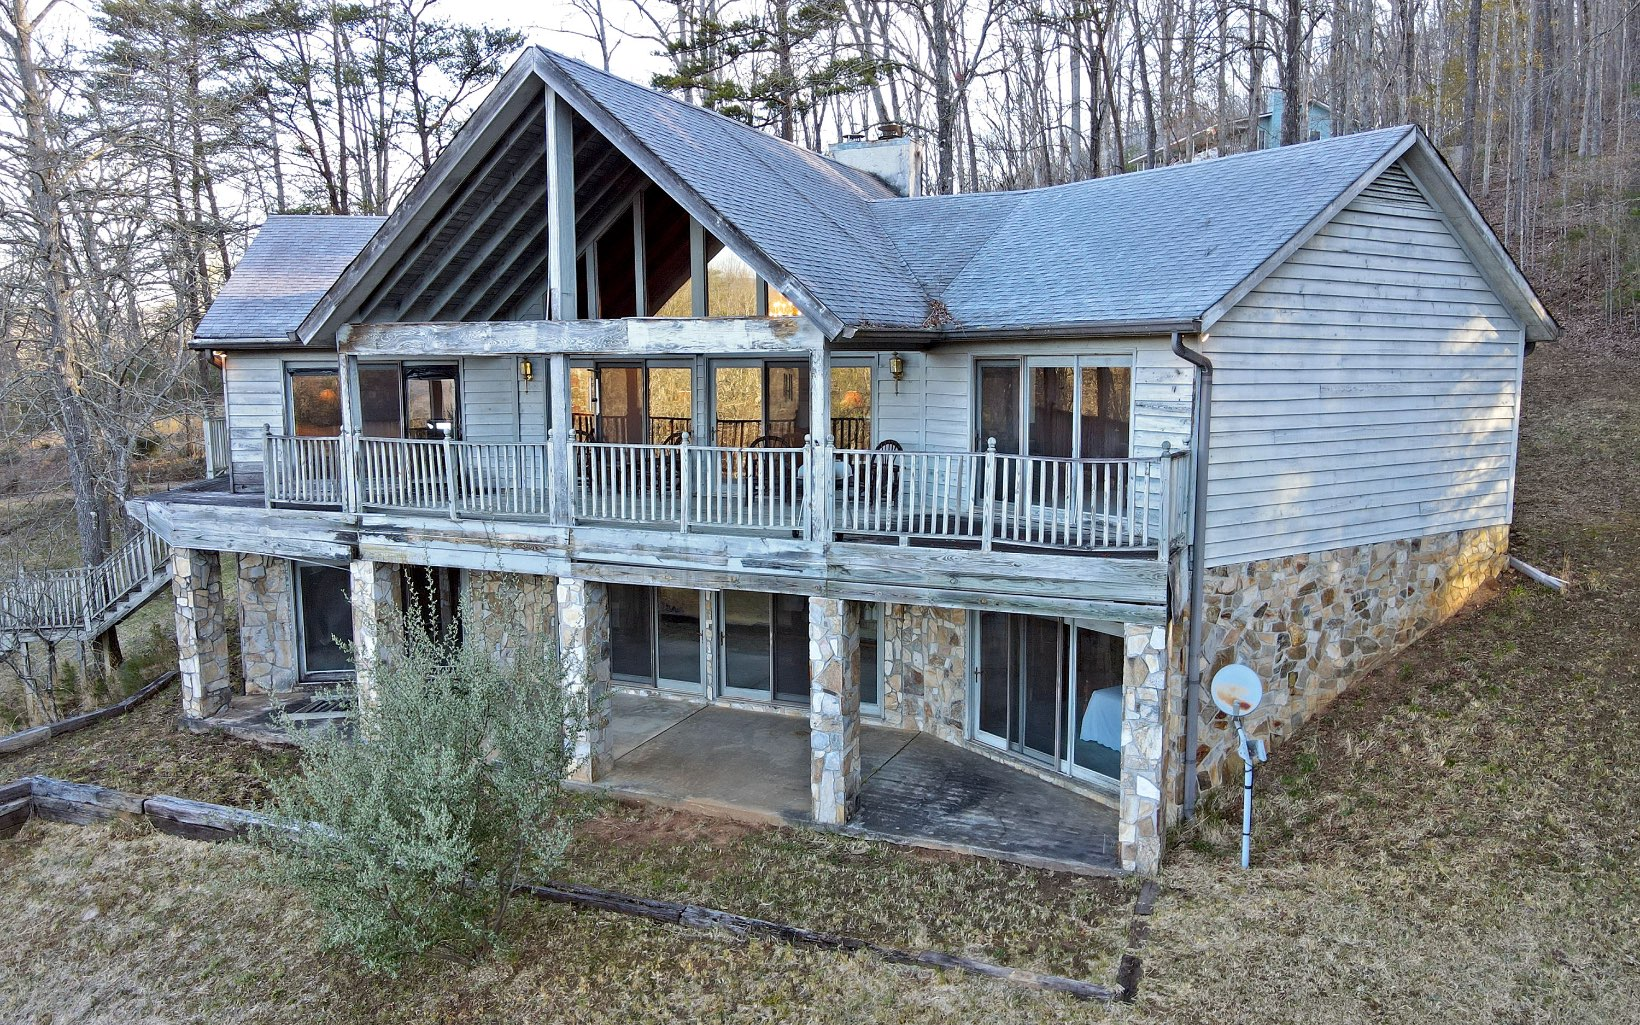 200 FIREFLY MEADOWS, Blairsville, Georgia 30512, 2 Bedrooms Bedrooms, ,3 BathroomsBathrooms,Single Family,For Sale,200 FIREFLY MEADOWS,305746